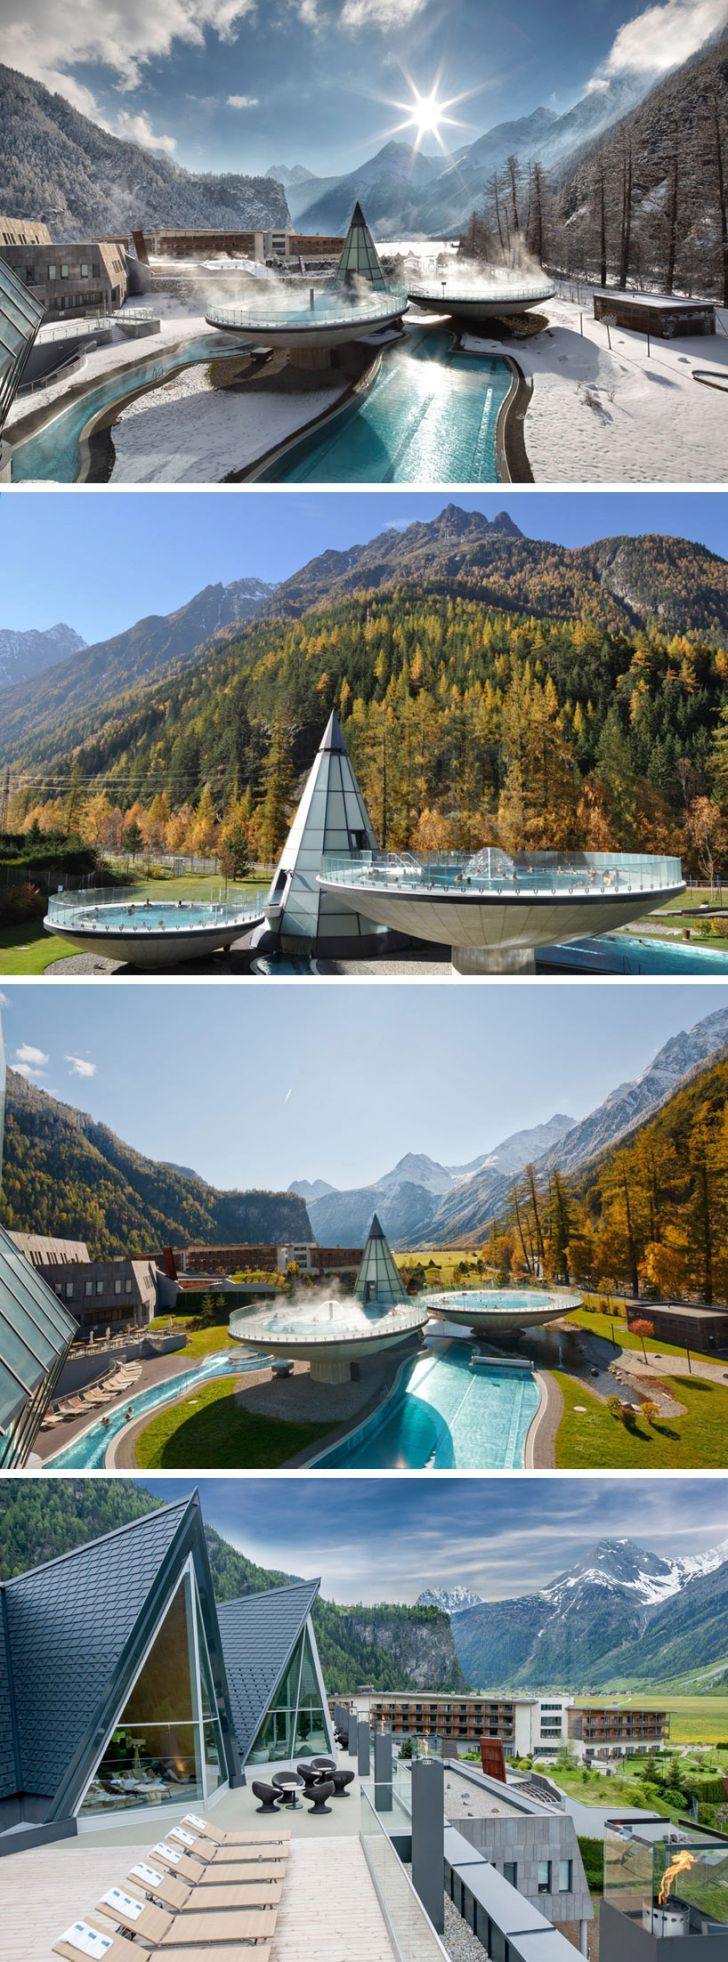 Aqua Dome resort in Austria - externally, a conical volume connects three bowl-shaped pools which seem to levitate above the ground's surface, featuring underwater music and various lighting effects. the jagged roofs of the observation deck echo the formation of the surrounding mountains in shape and materiality, with locally sourced stone used throughout the design...x